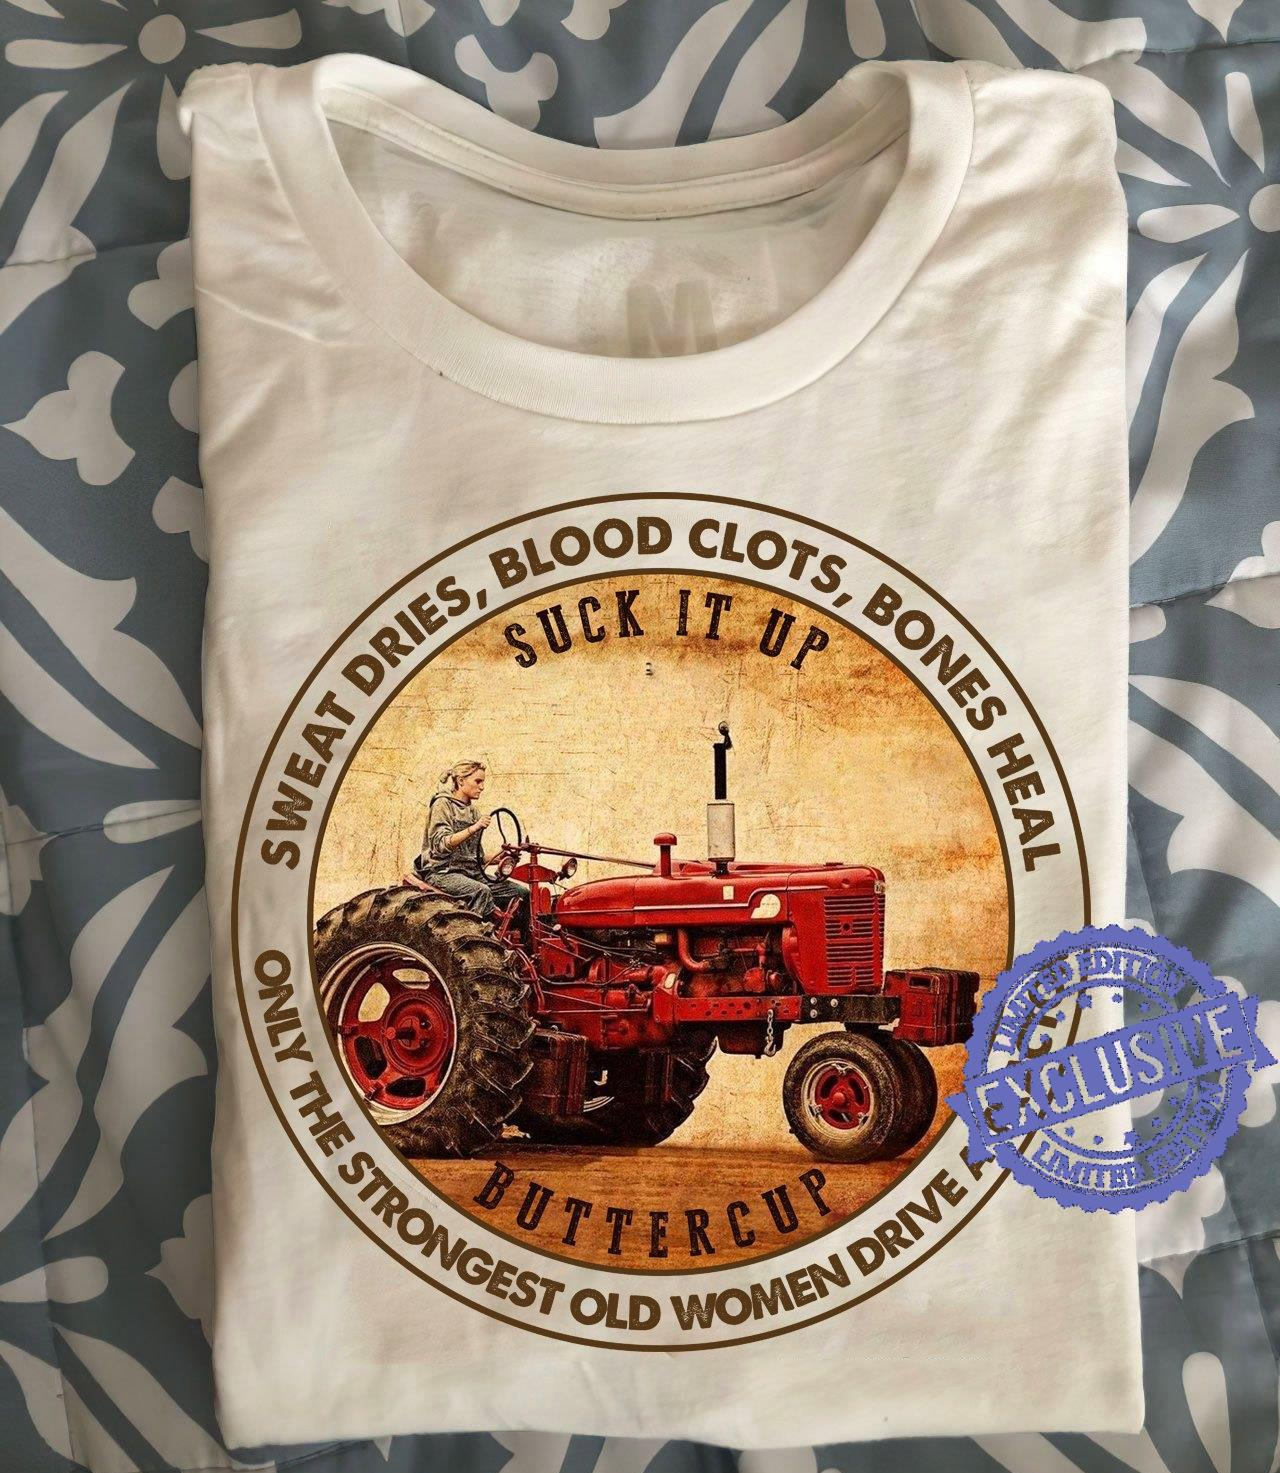 Suck it up buttercup sweat dries blood clots bones heal only the strongest old women drive a tractor shirt